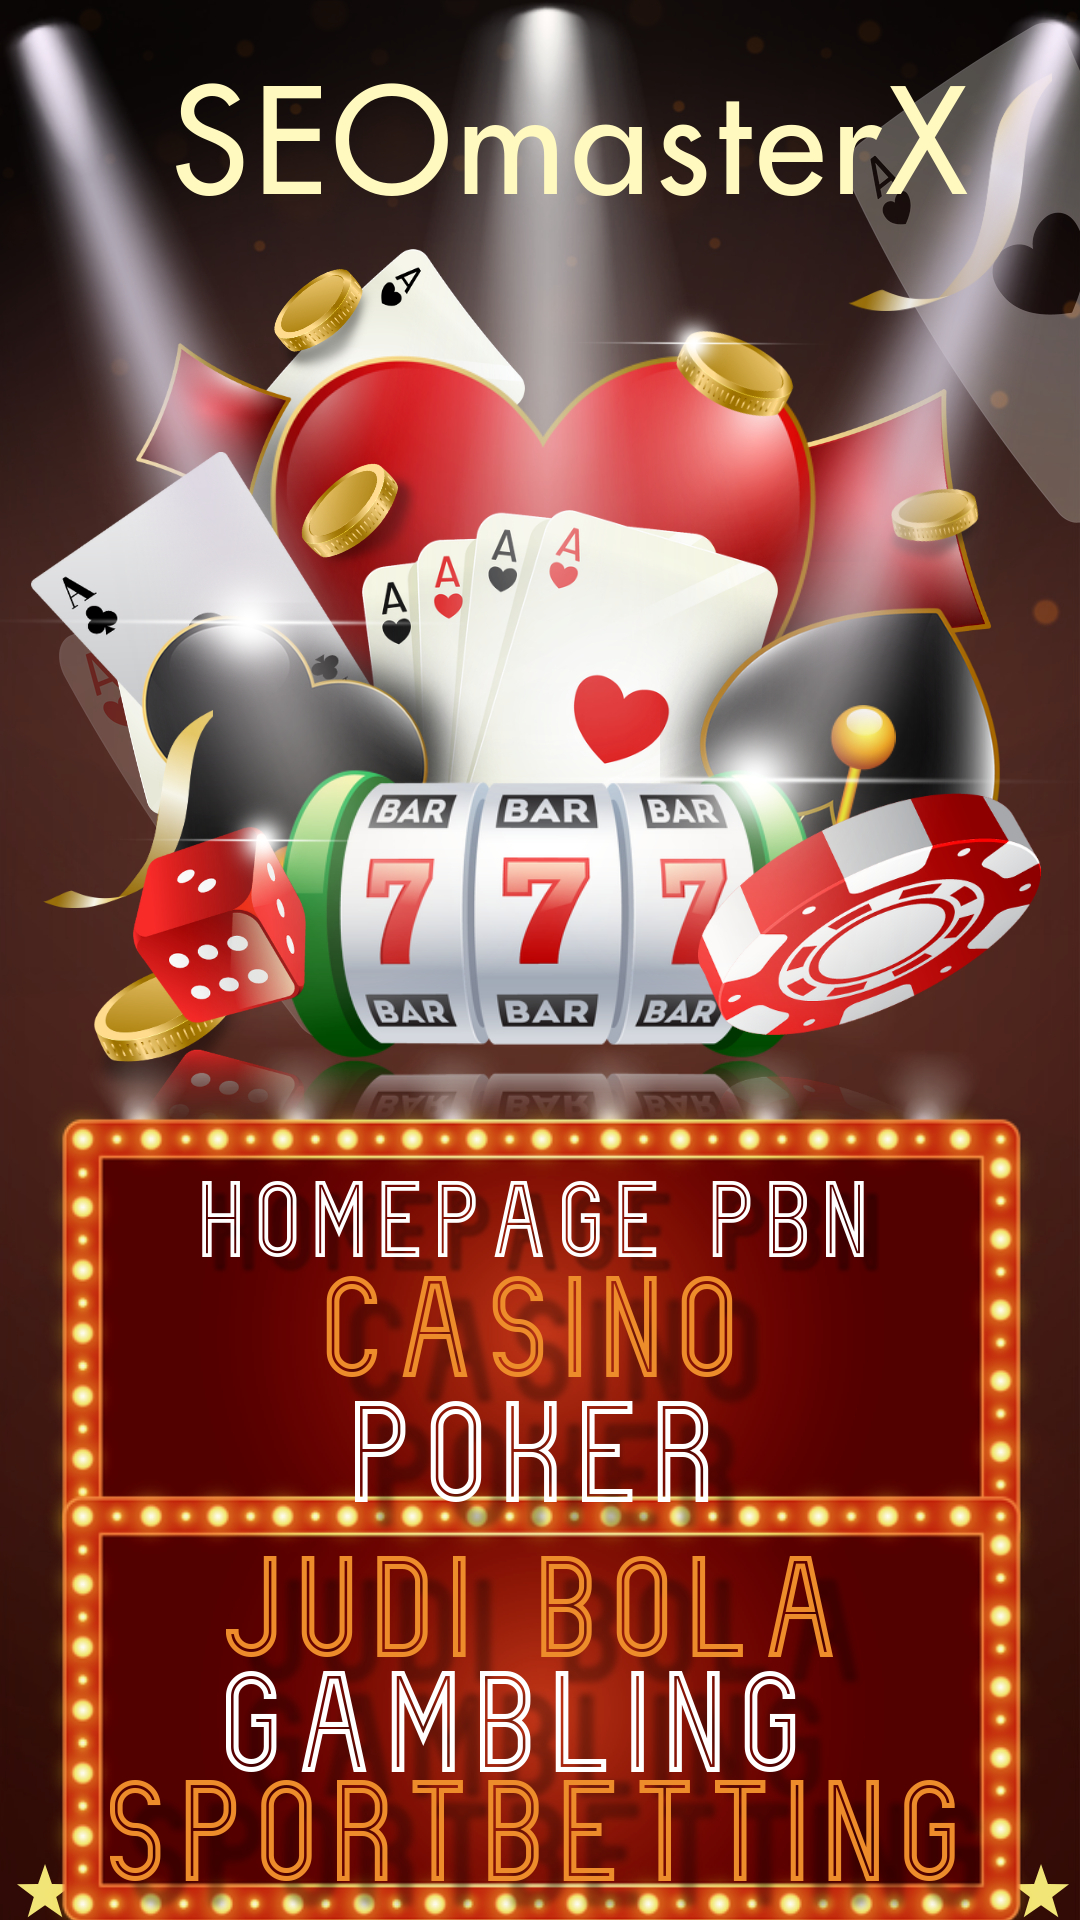 100 Homepage PBN Post Gambling Poker,  Betting,  Judi Bola,  Casino - SEO Package 1st